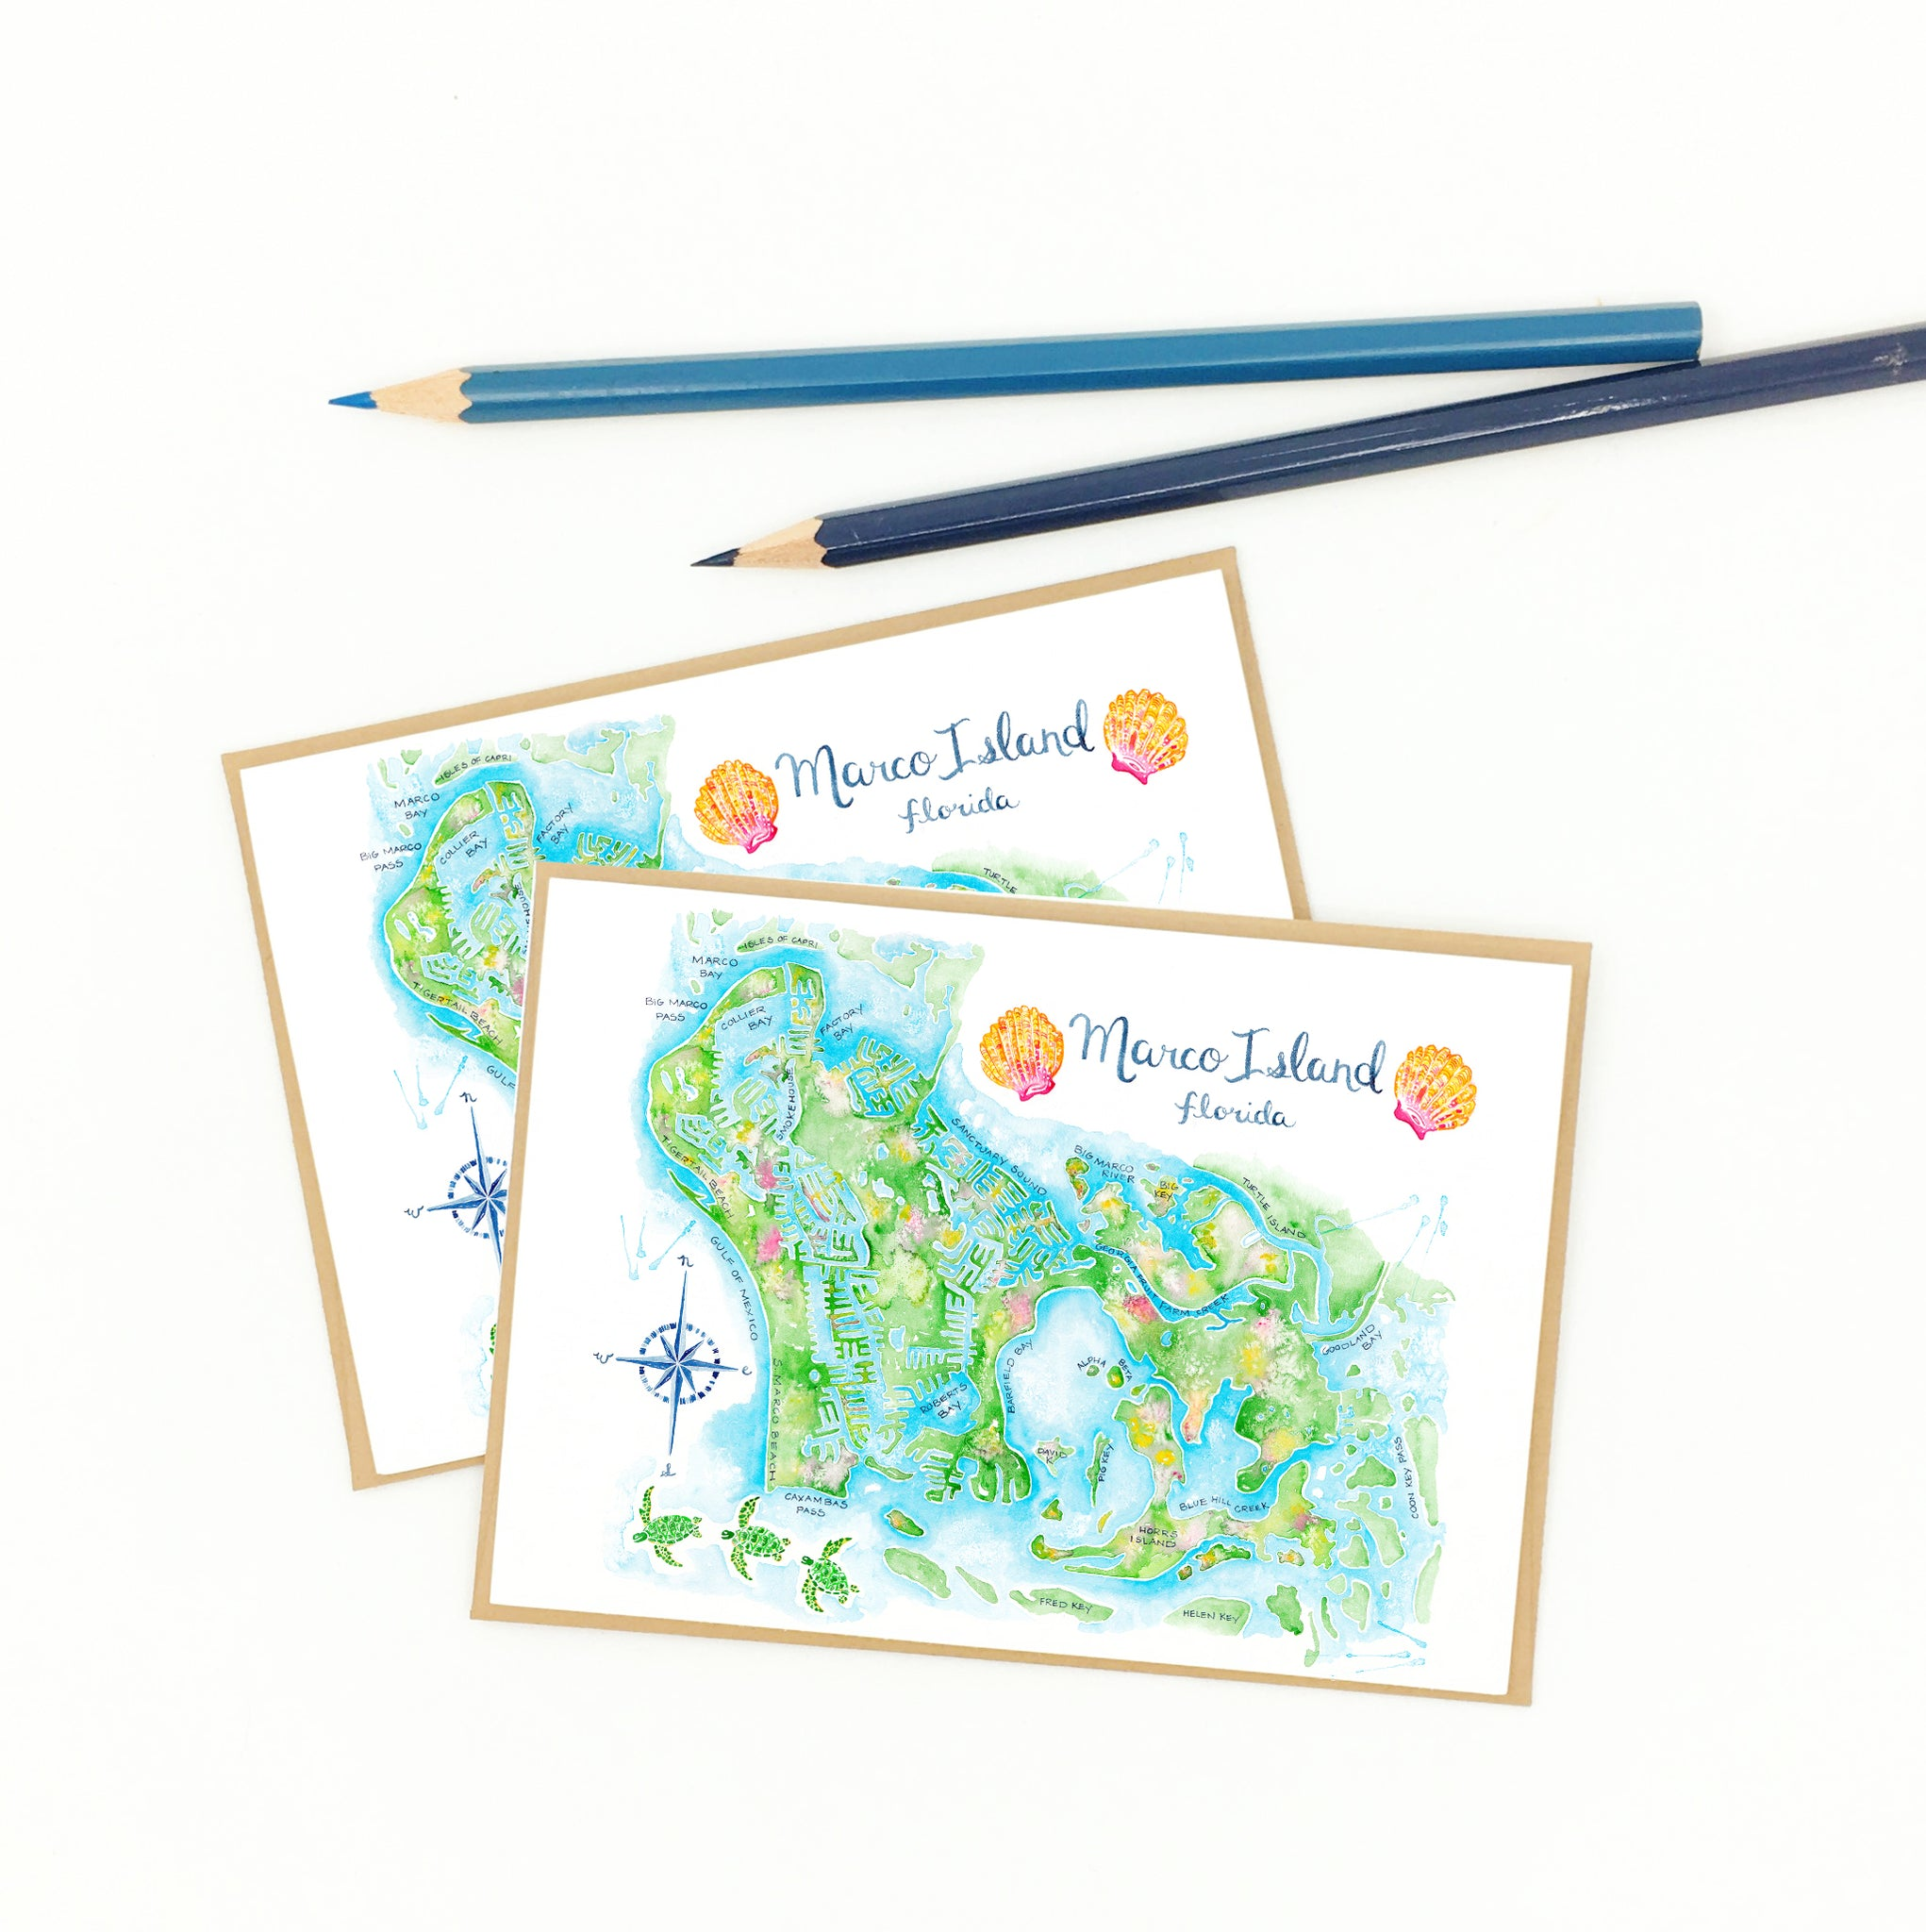 Marco Island gifts, notecard boxed set, recycled.